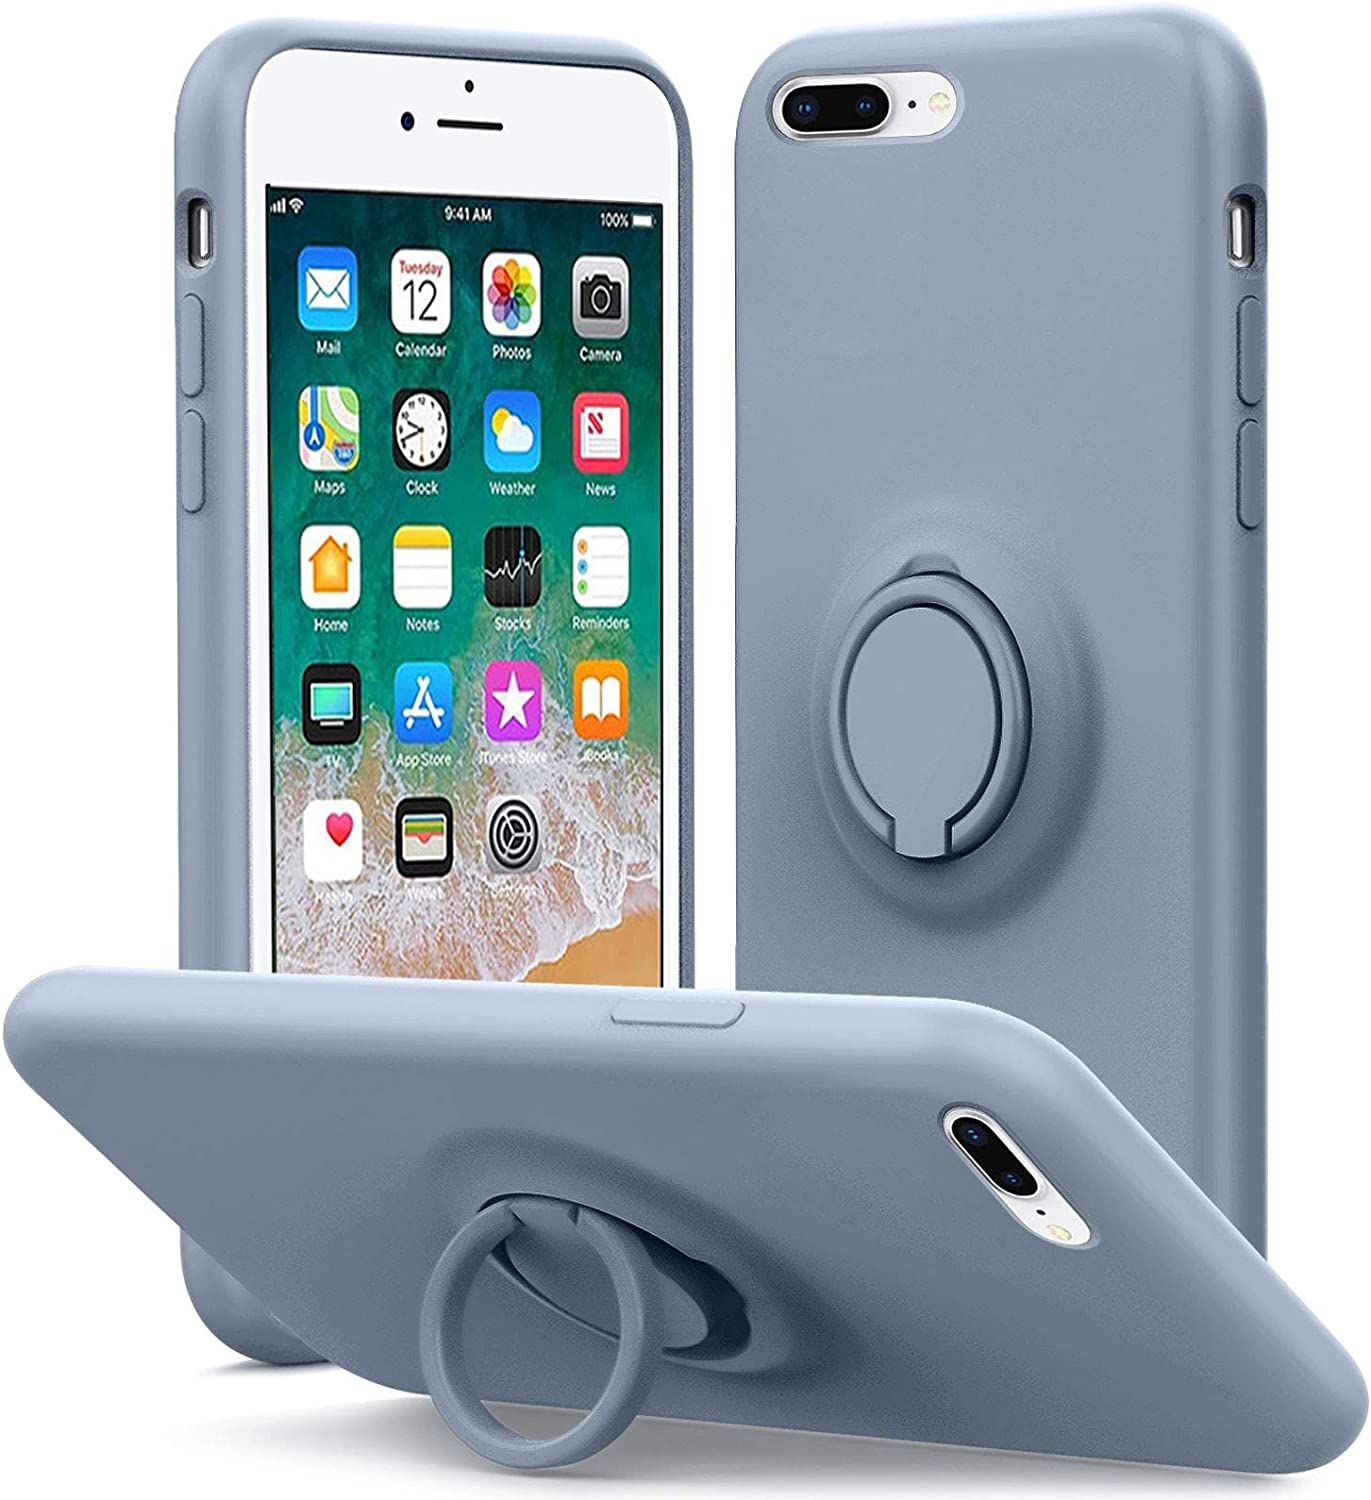 MHH Compatible with iPhone 8 Plus Case, iPhone 7 Plus Case, Kickstand | Anti-Scratch | Silky-Soft Silicone Full-Body Protective Microfiber Liner Shock Absorption Gel Rubber Case-Lavender Grey